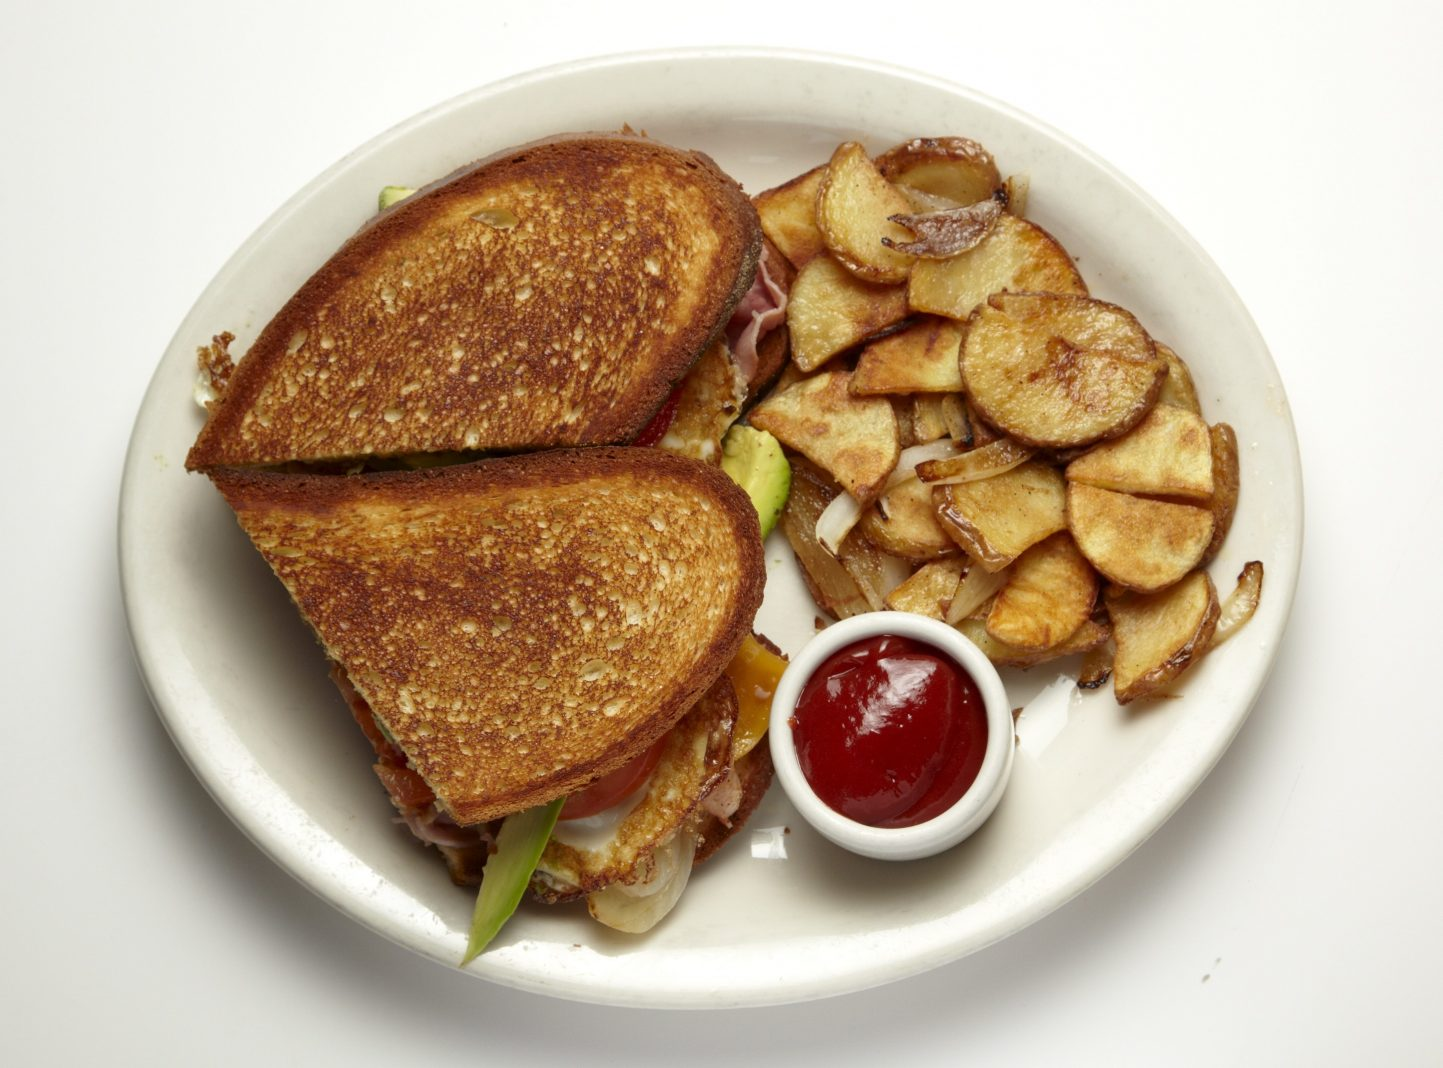 All-day breakfast: Iggy's Fried Egg Sandwich with GDC potatoes at Good Day Cafe